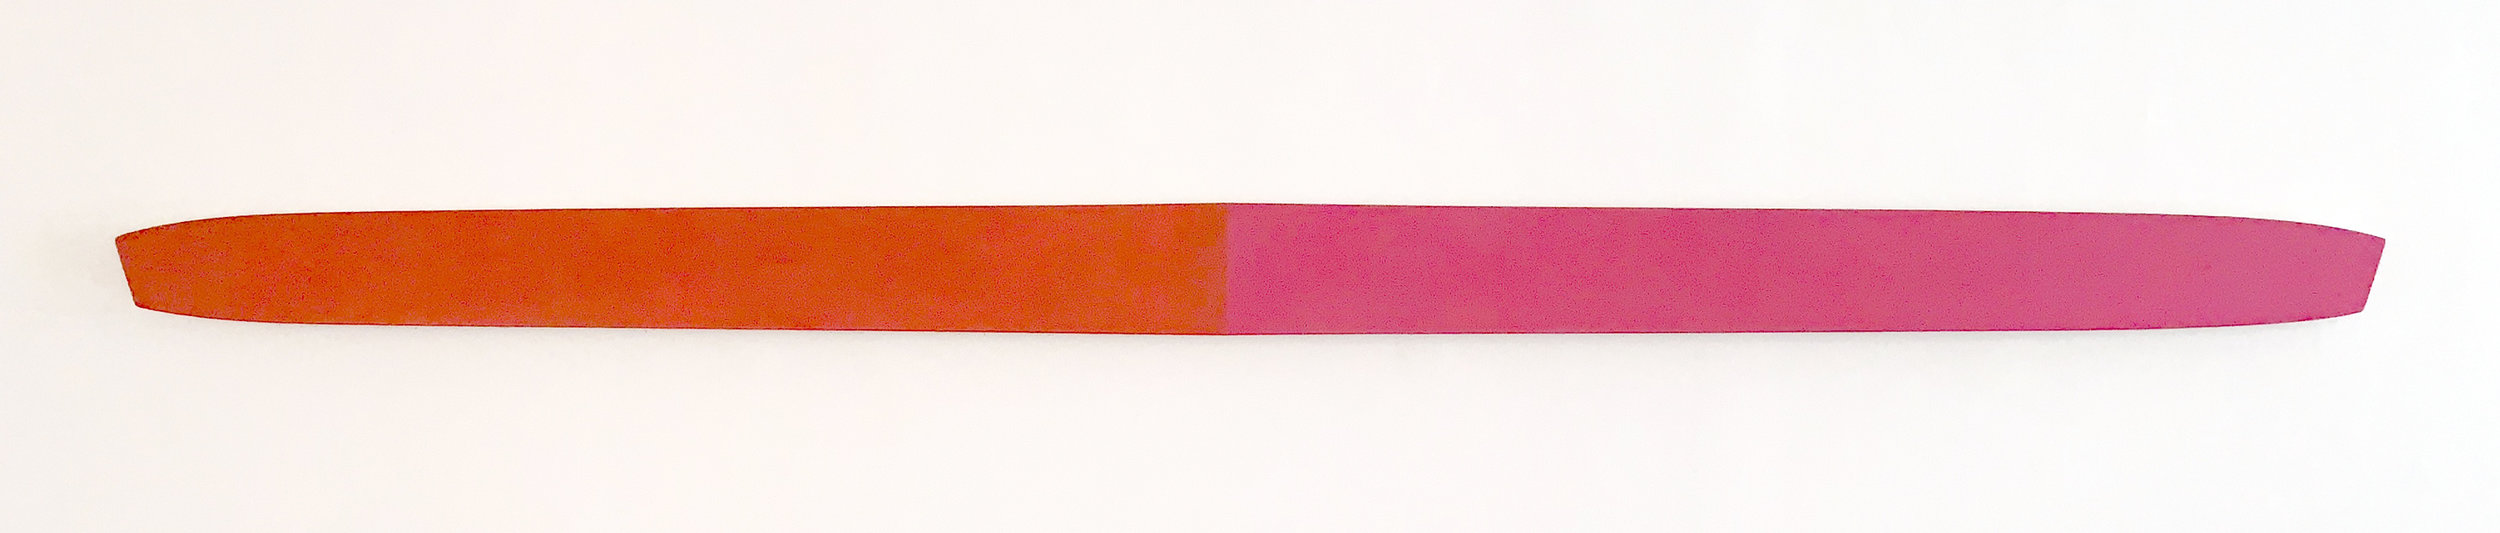 Illusion of Flight #2, 5.25 x 88.75 x 2 inches / 13.5 x 255.2 x 5 cm, acrylic on poplar, 2019